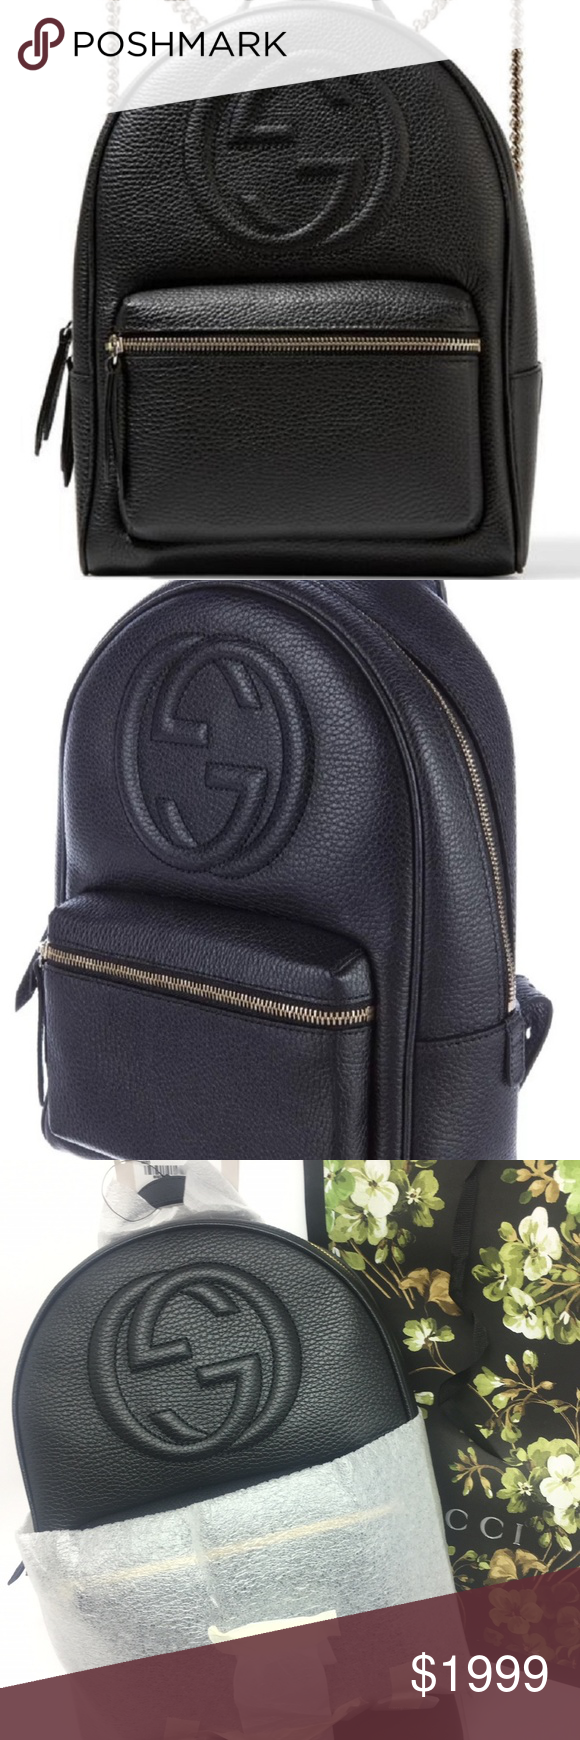 a20146bd4 Gucci #536192 Soho Leather Gold Chain Backpack - Black Textured Leather -  Classic Gucci GG